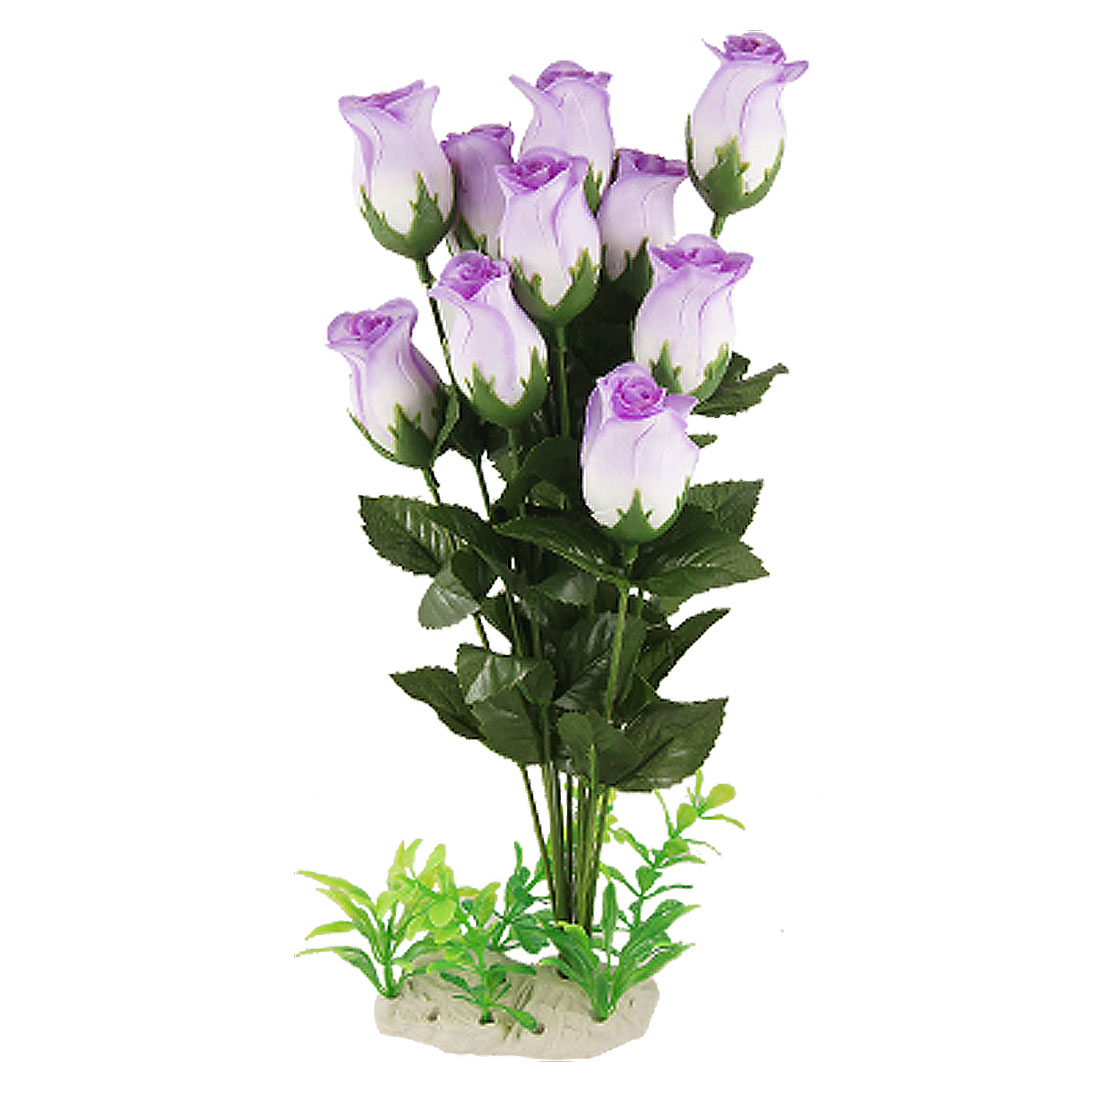 Aquarium Decorative 12 Purple Fabric Flower Green Leaf Plastic Plants